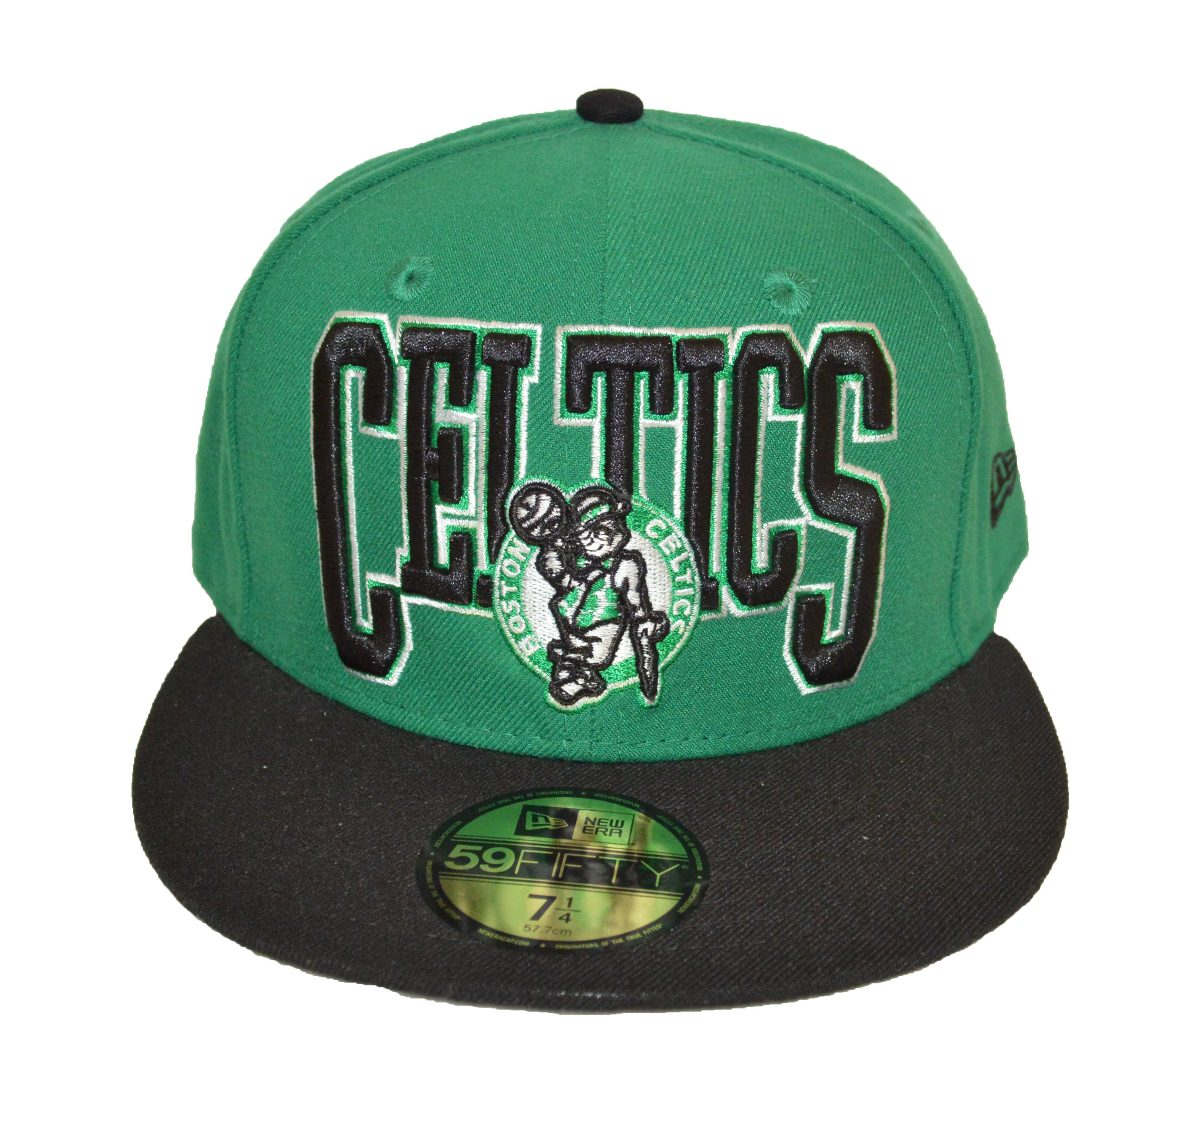 257e636f50c63 boné new era aba reta fechado 5950 nba boston celtics. Carregando zoom.